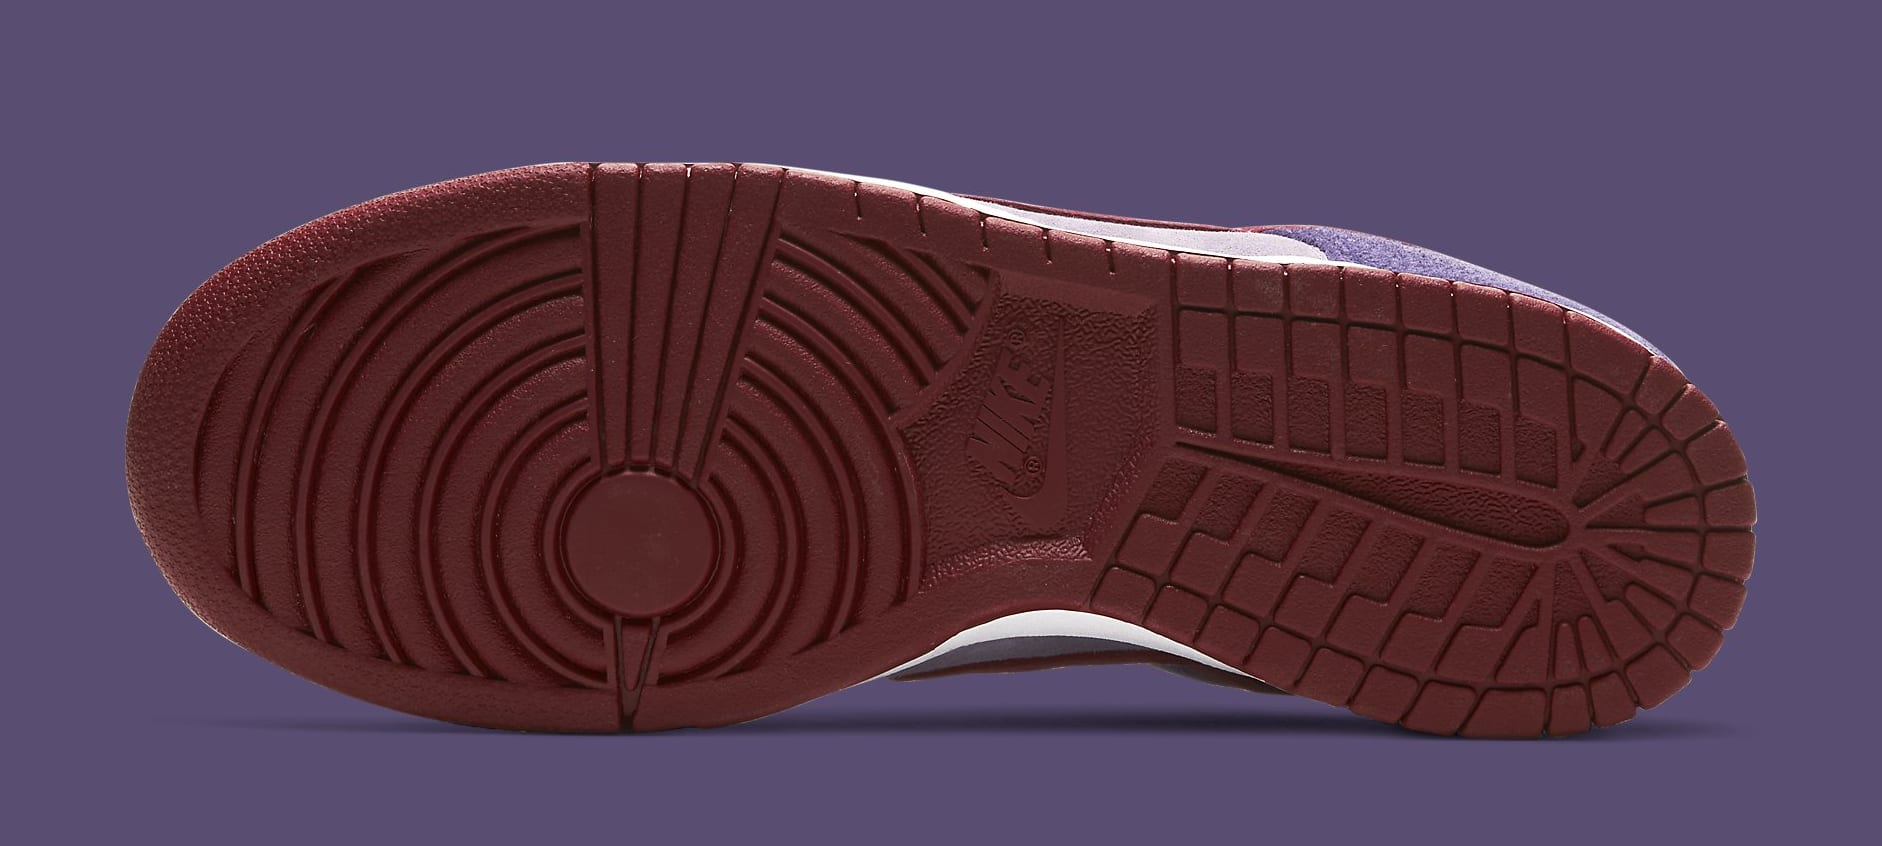 nike-dunk-low-plum-2020-cu1726-500-outsole